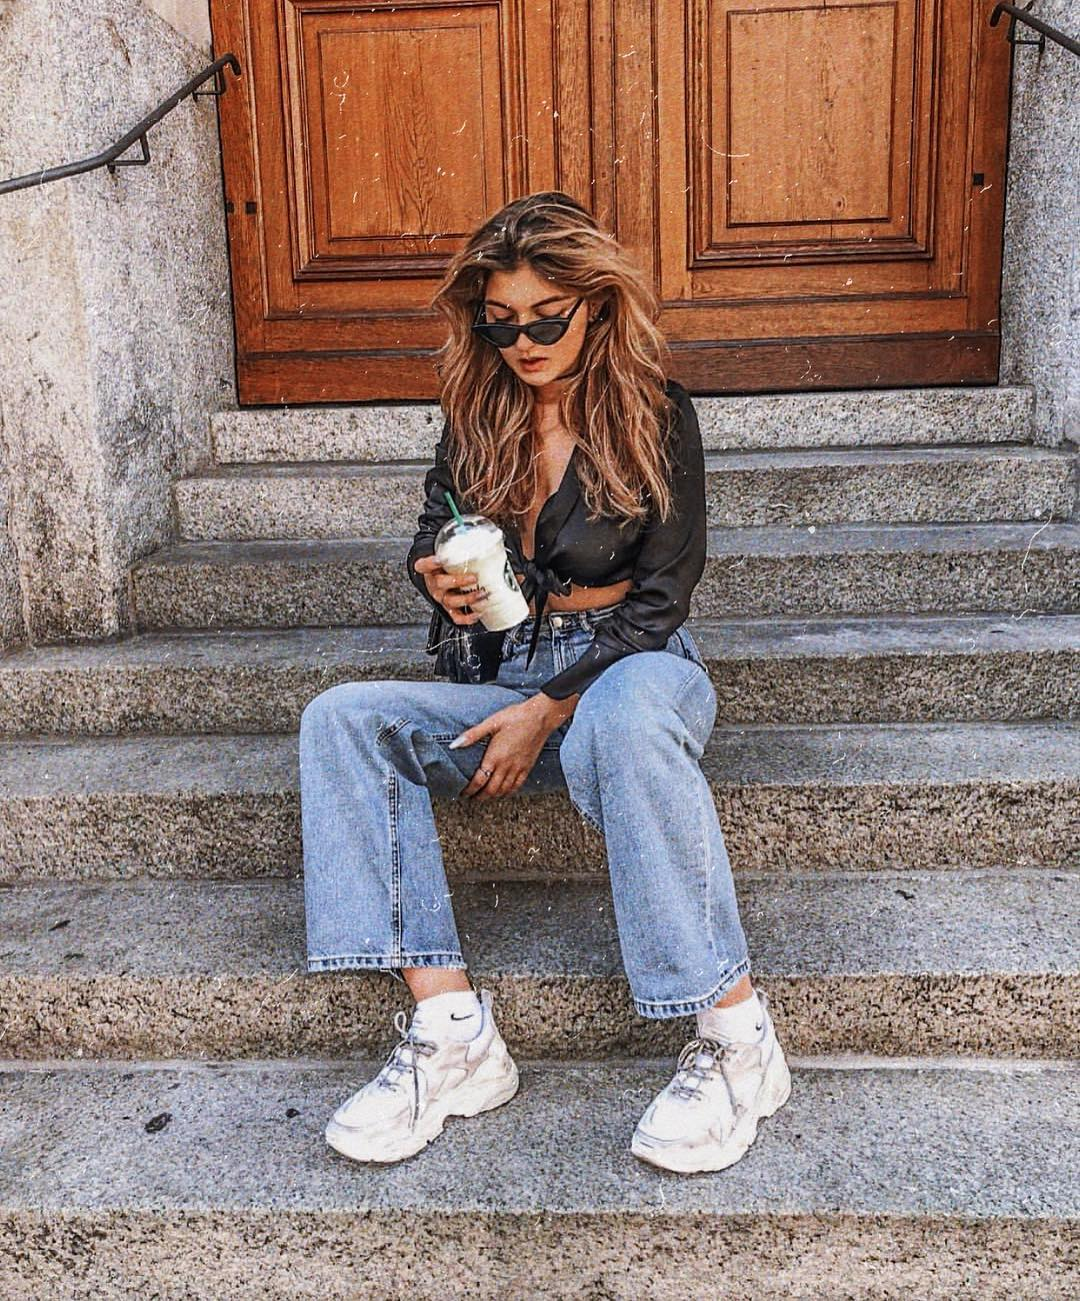 Casual Summer Basics: Silk Black Crop Blouse, Boyfriend Jeans And Chunky Sneakers In White 2019